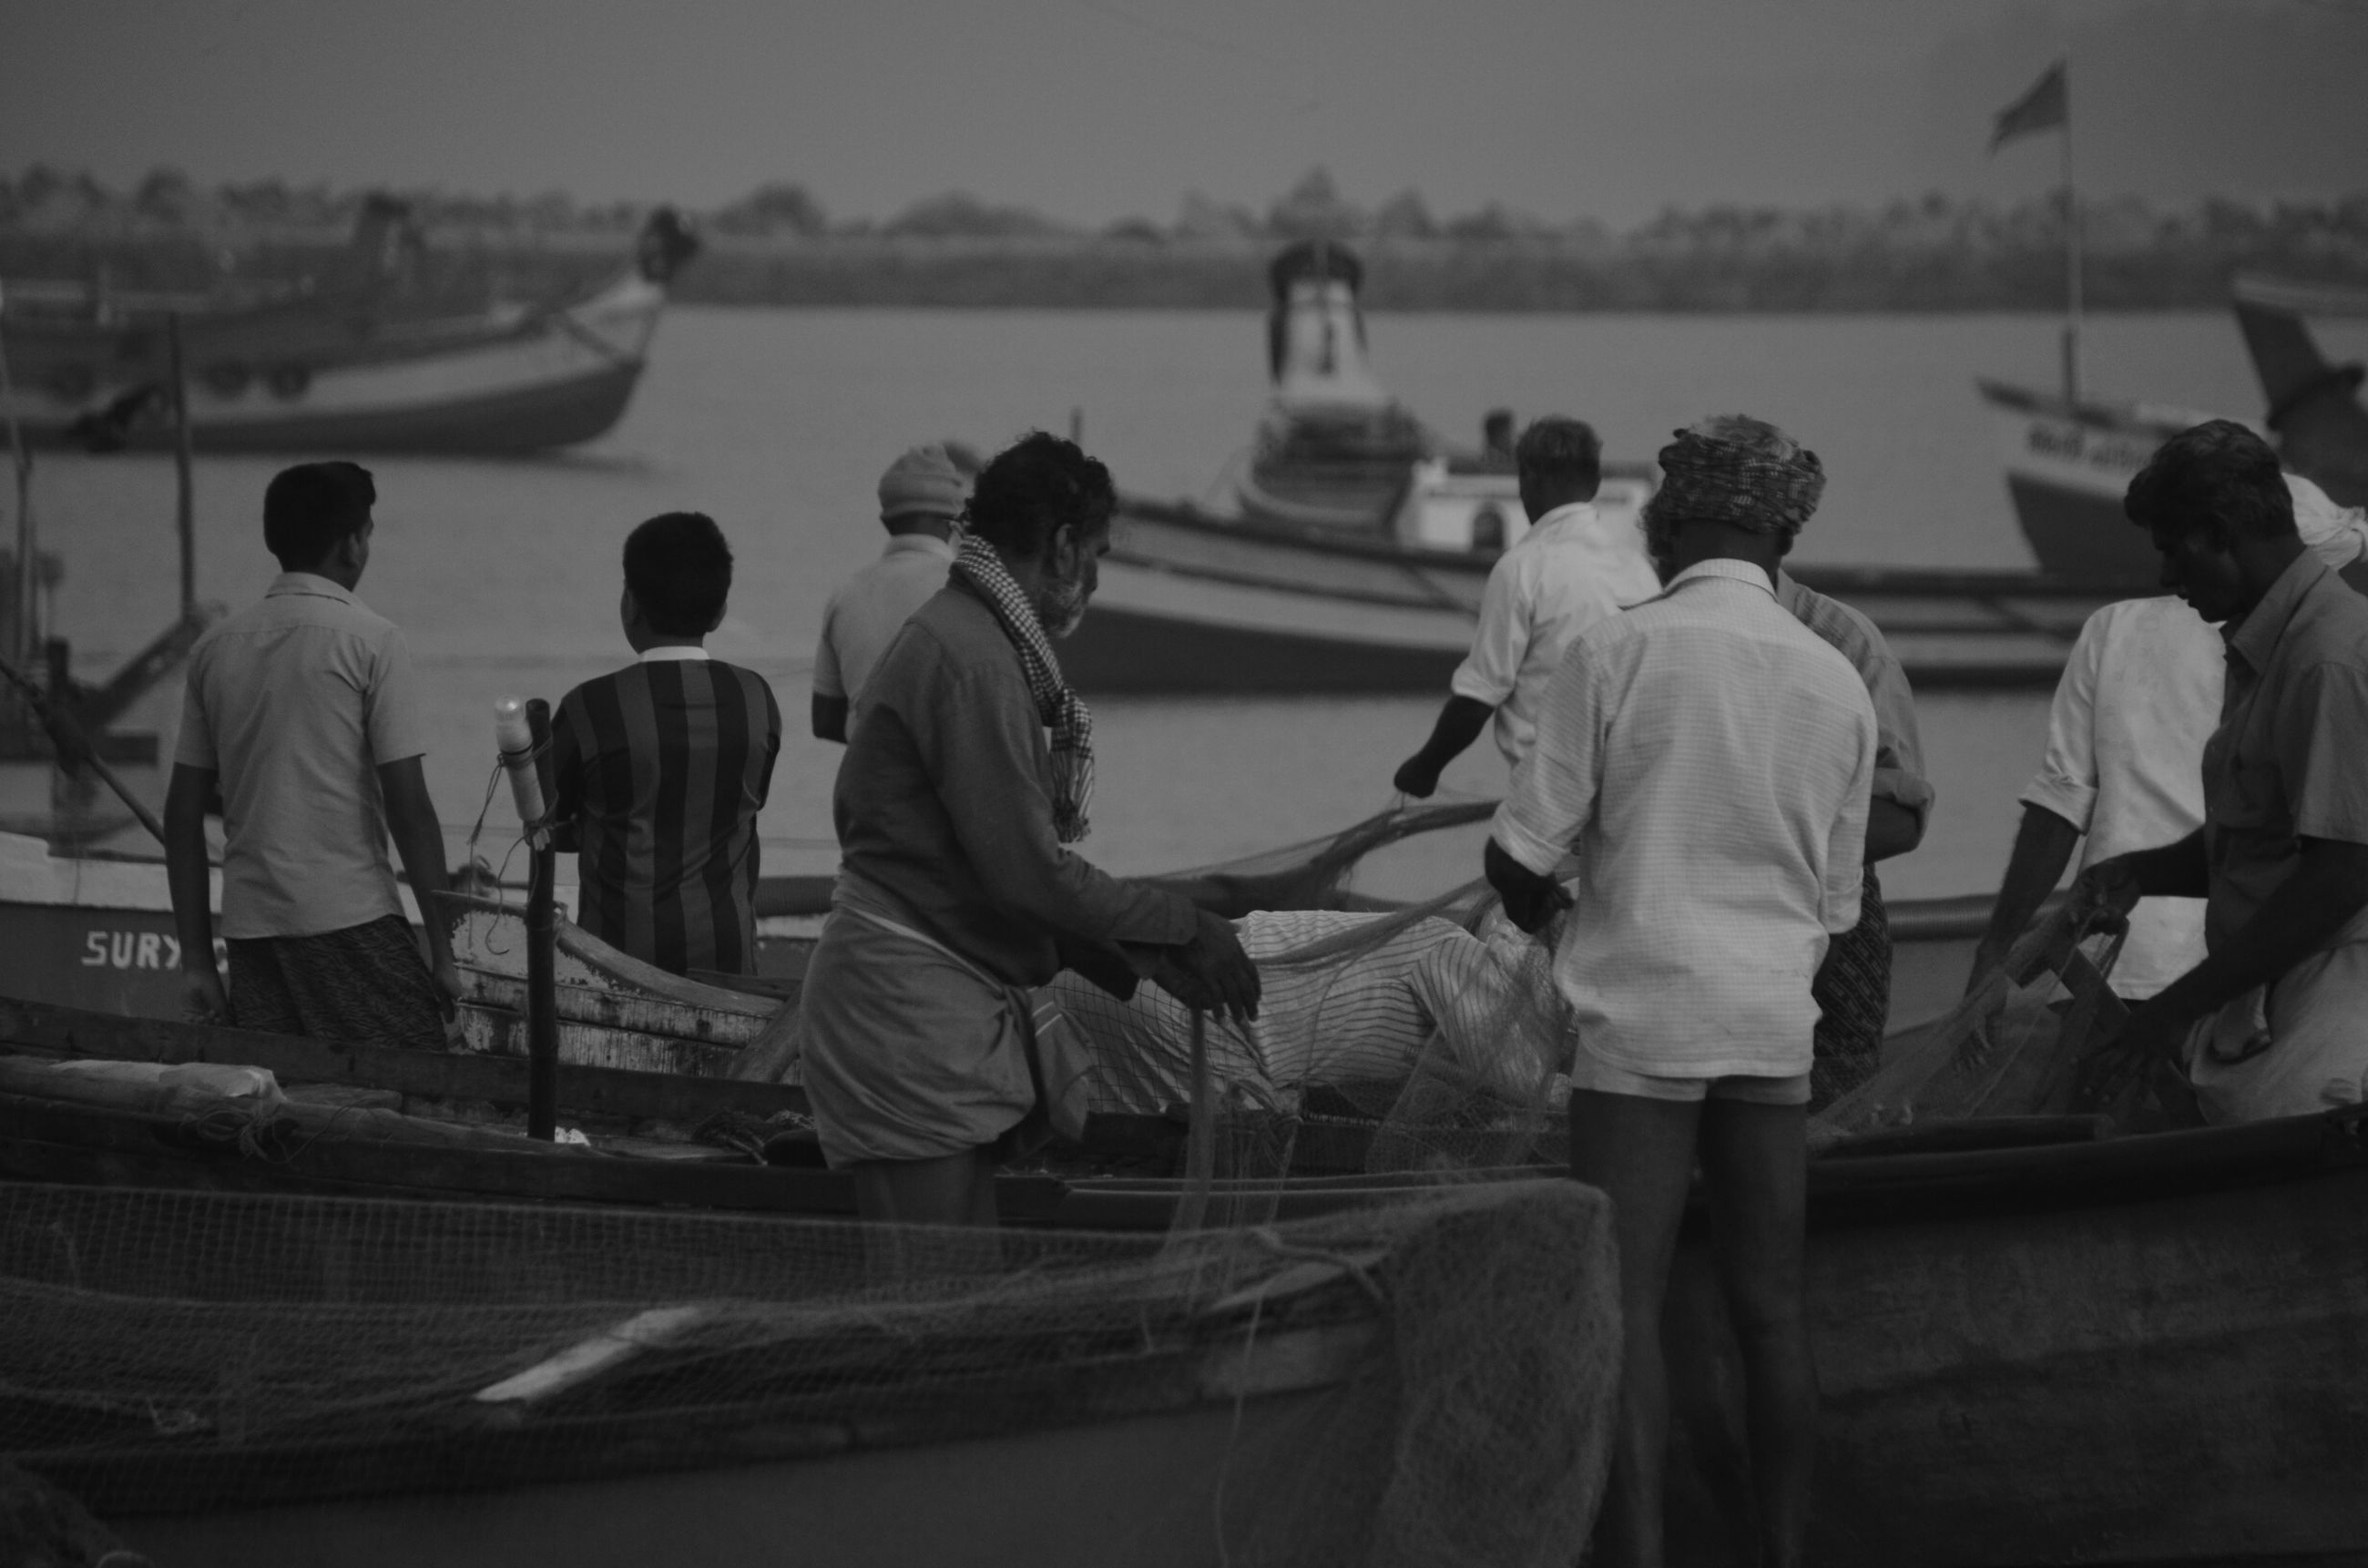 nautical vessel, men, transportation, water, mode of transport, boat, sea, lifestyles, leisure activity, rear view, moored, focus on foreground, sitting, person, occupation, outdoors, bird